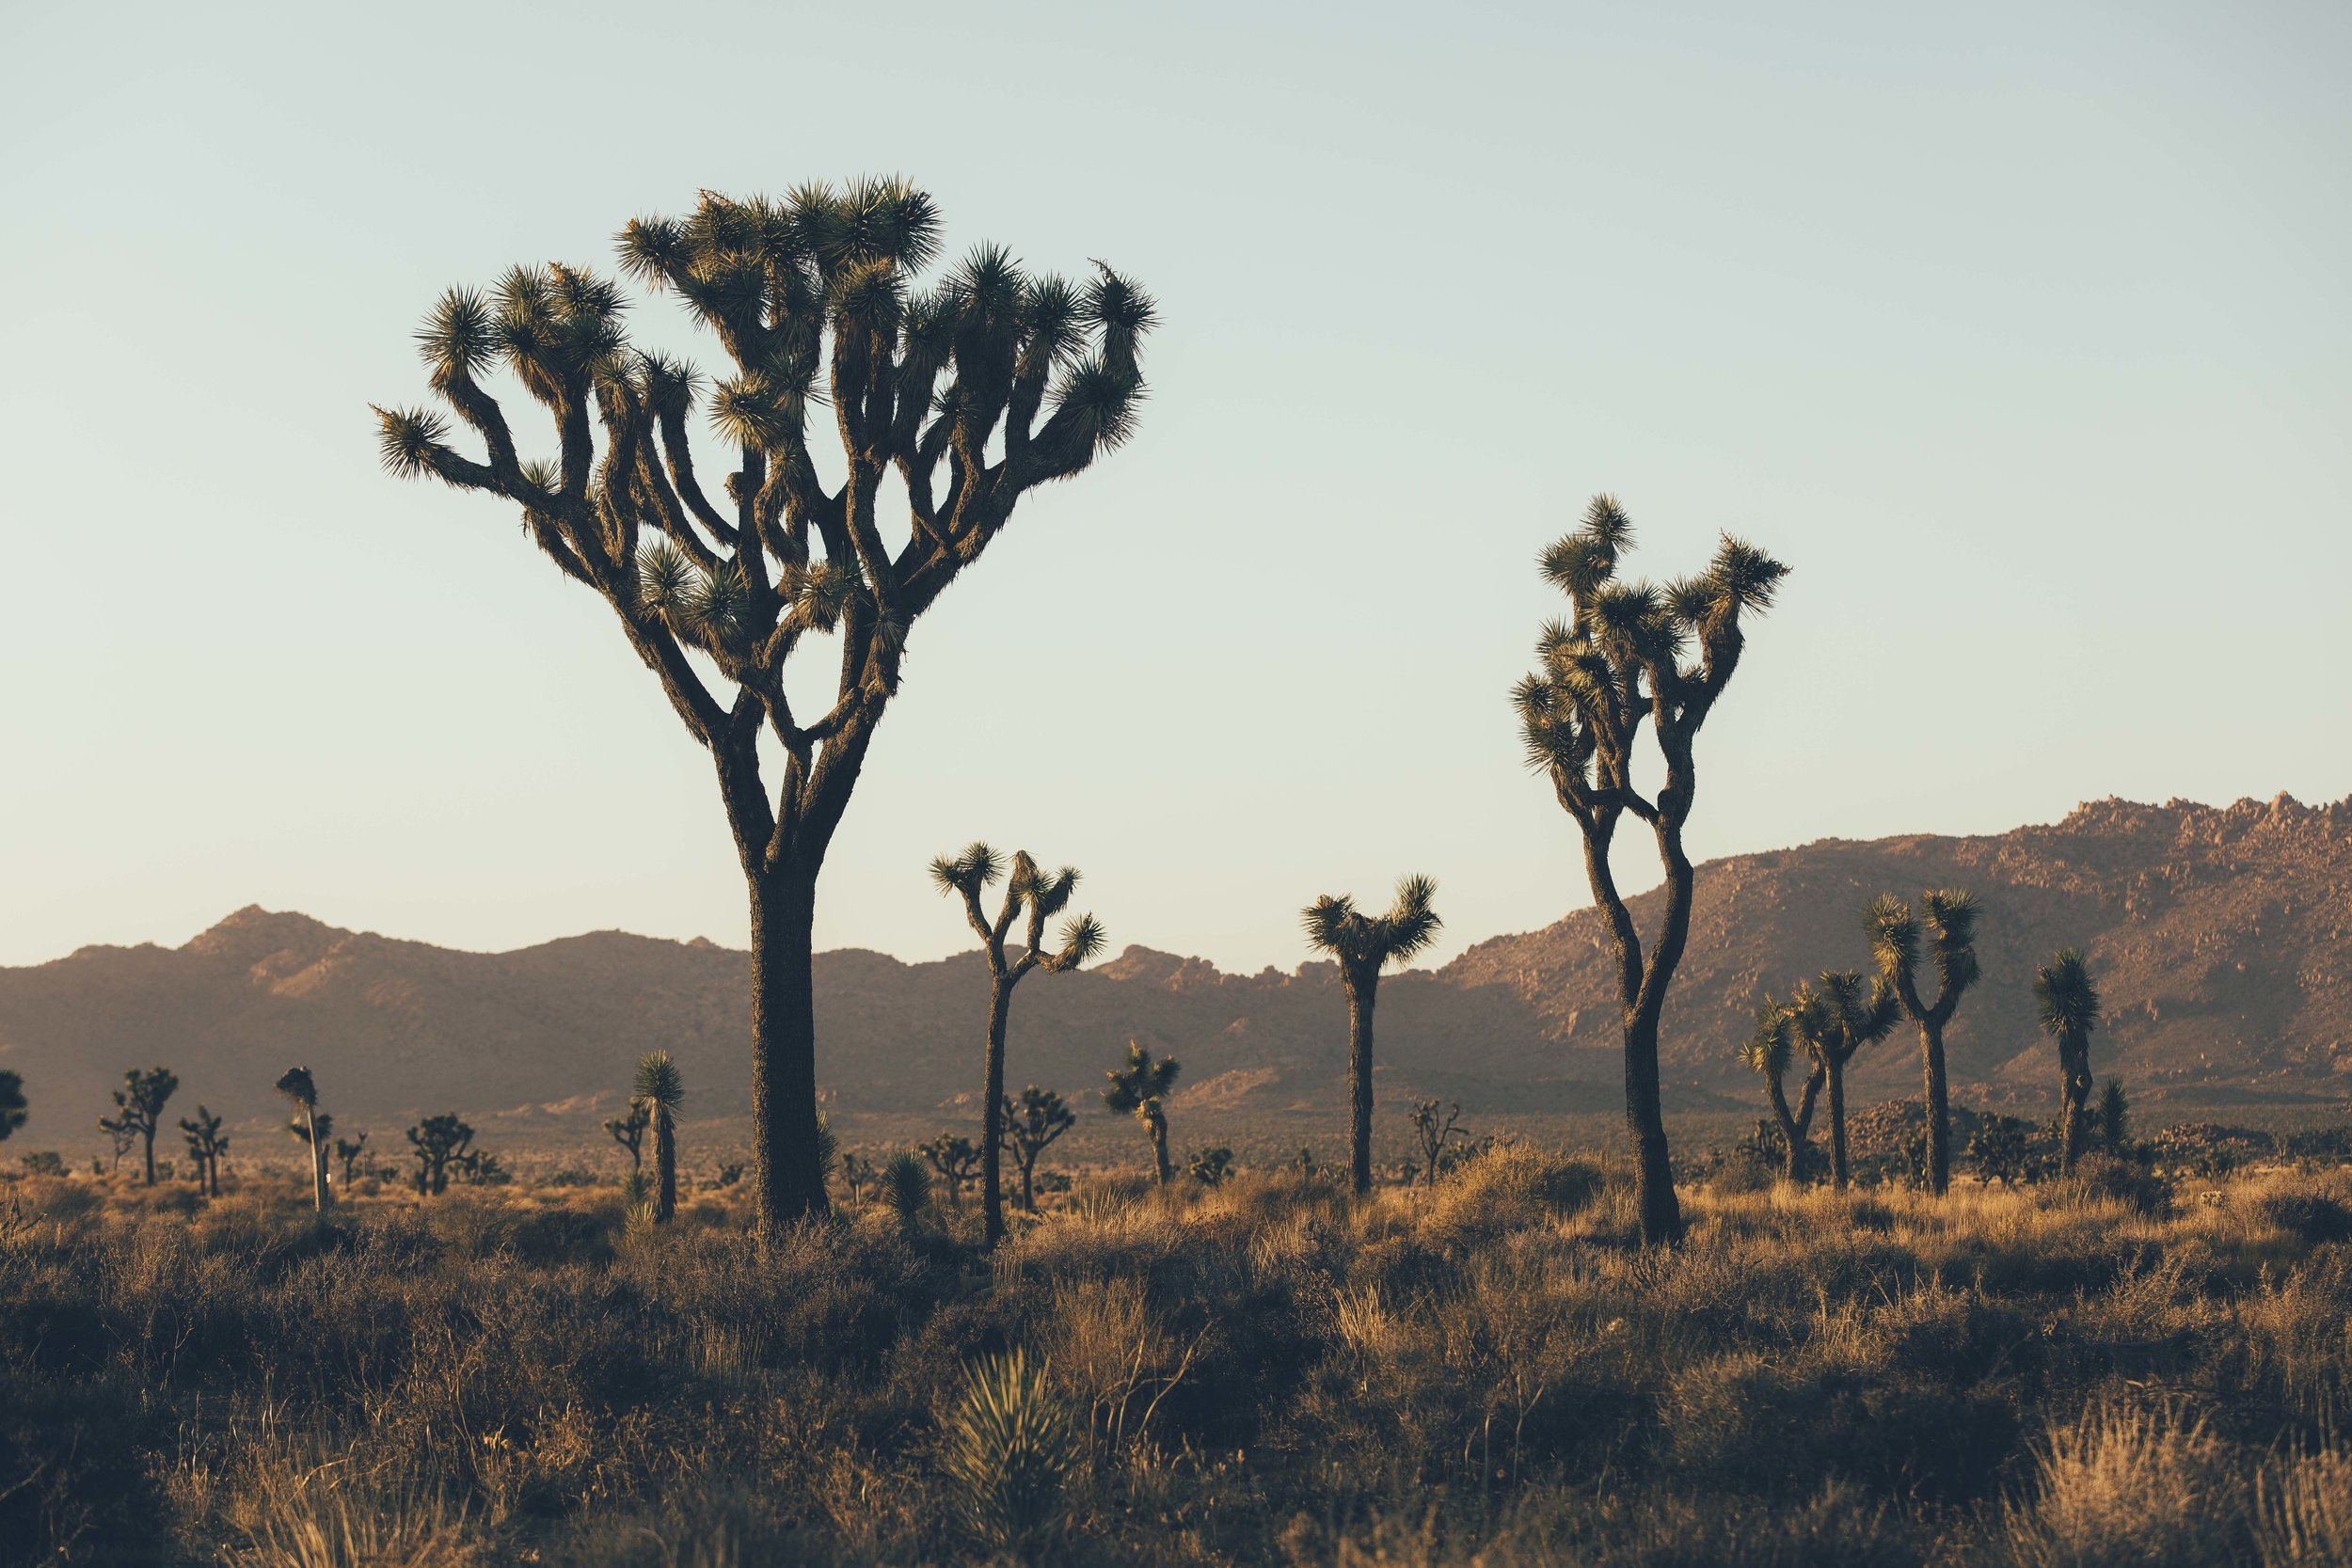 Joshua Tree James Glacier Photography 2018-6.jpg